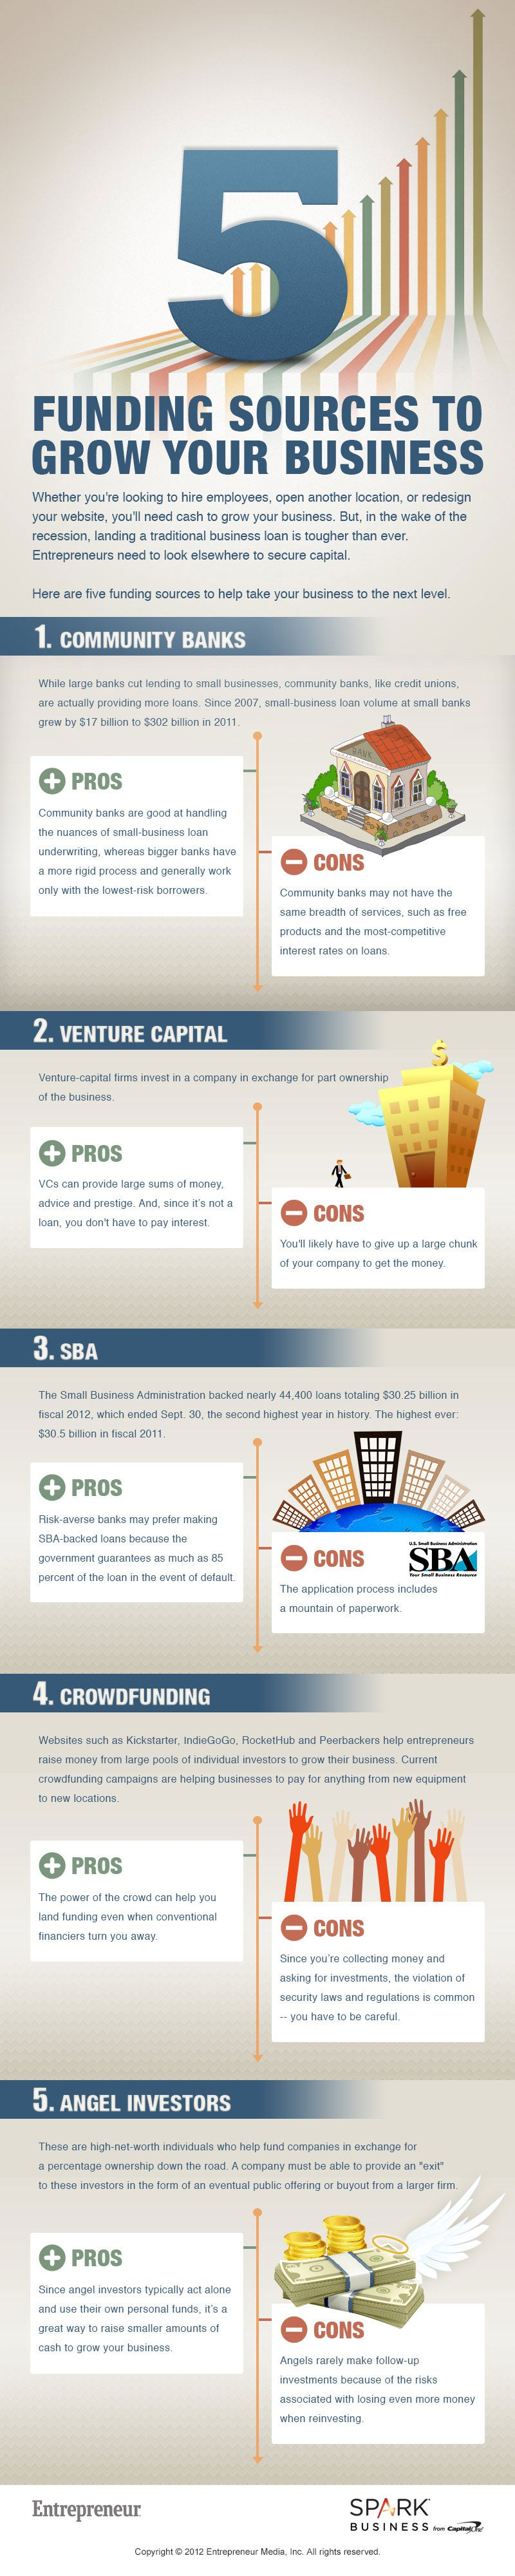 5 Funding Sources to Grow Your Business (Infographic)